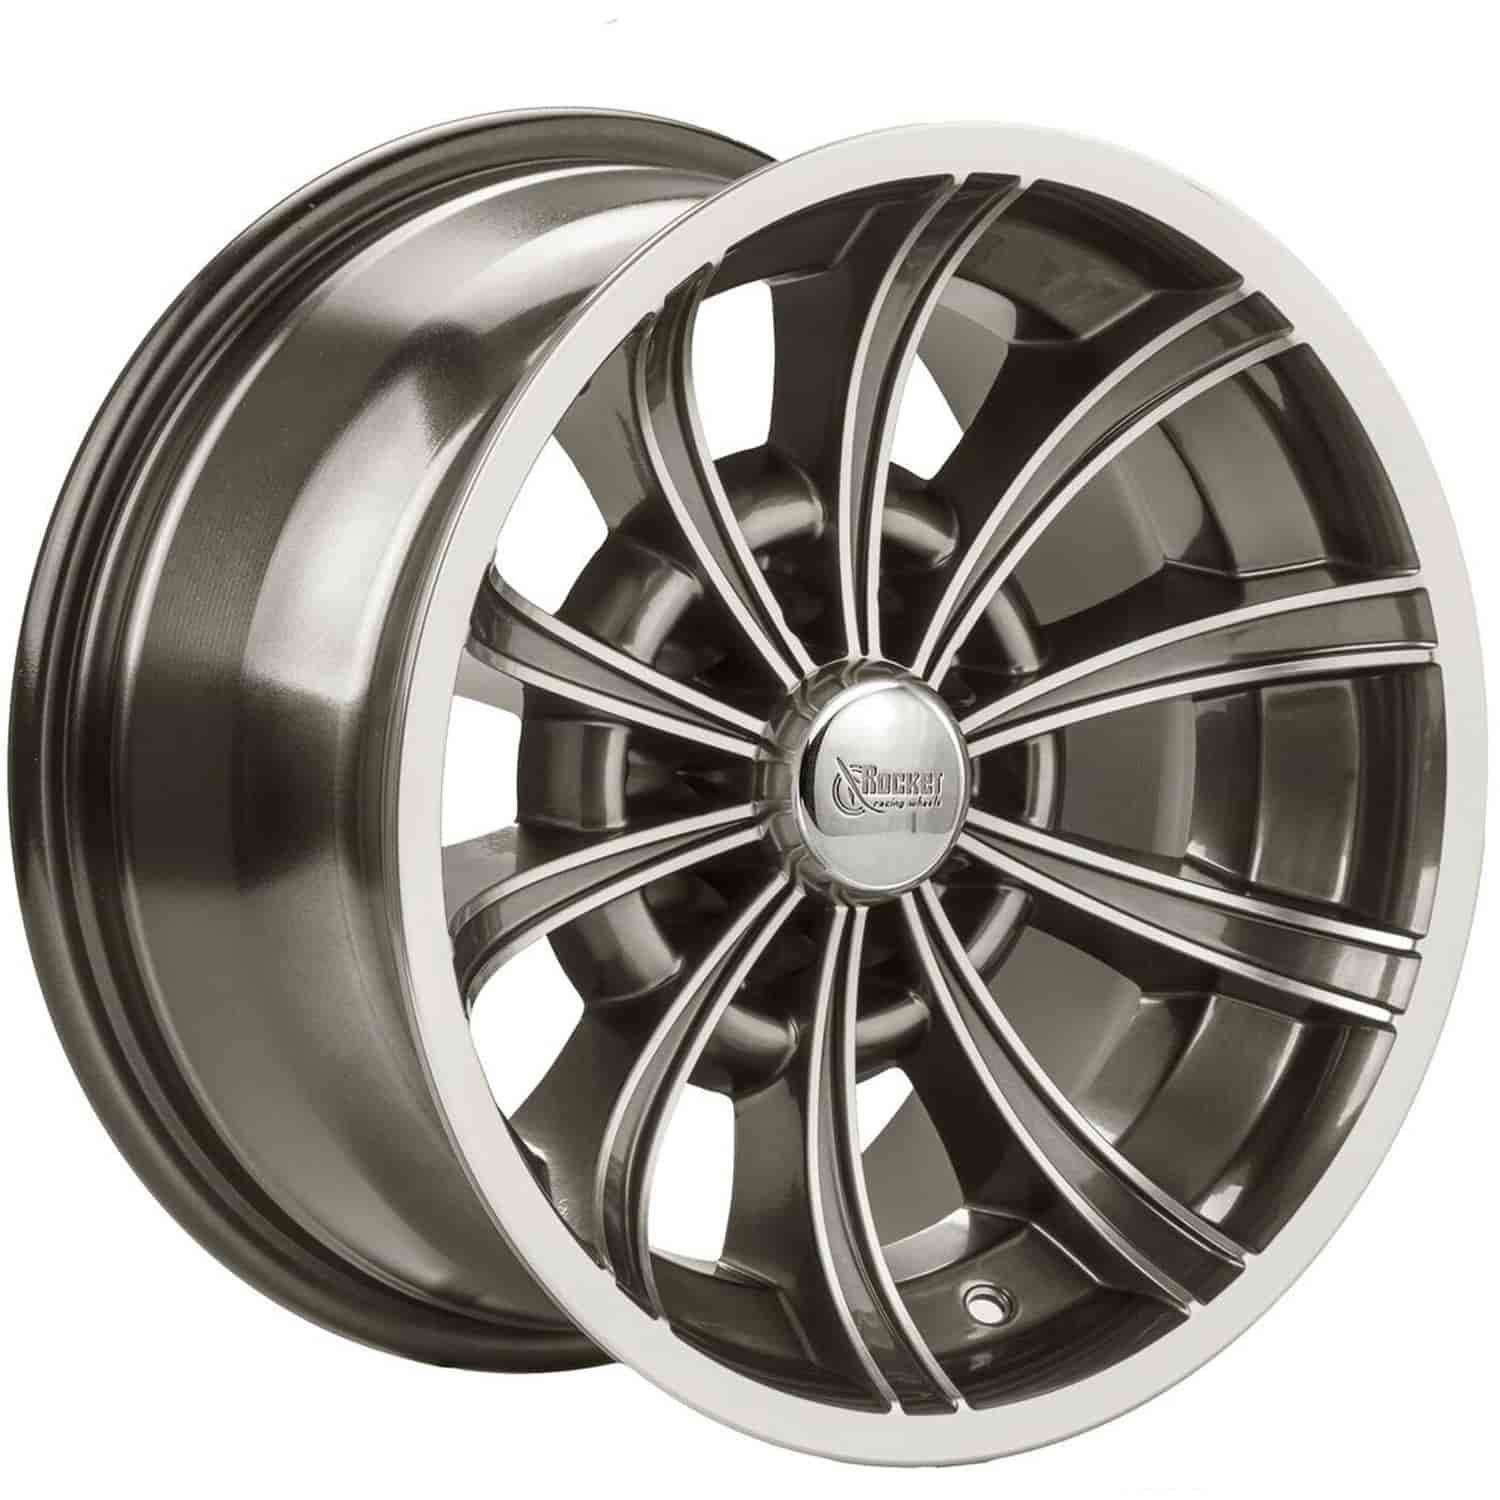 Rocket Wheels R106-570440